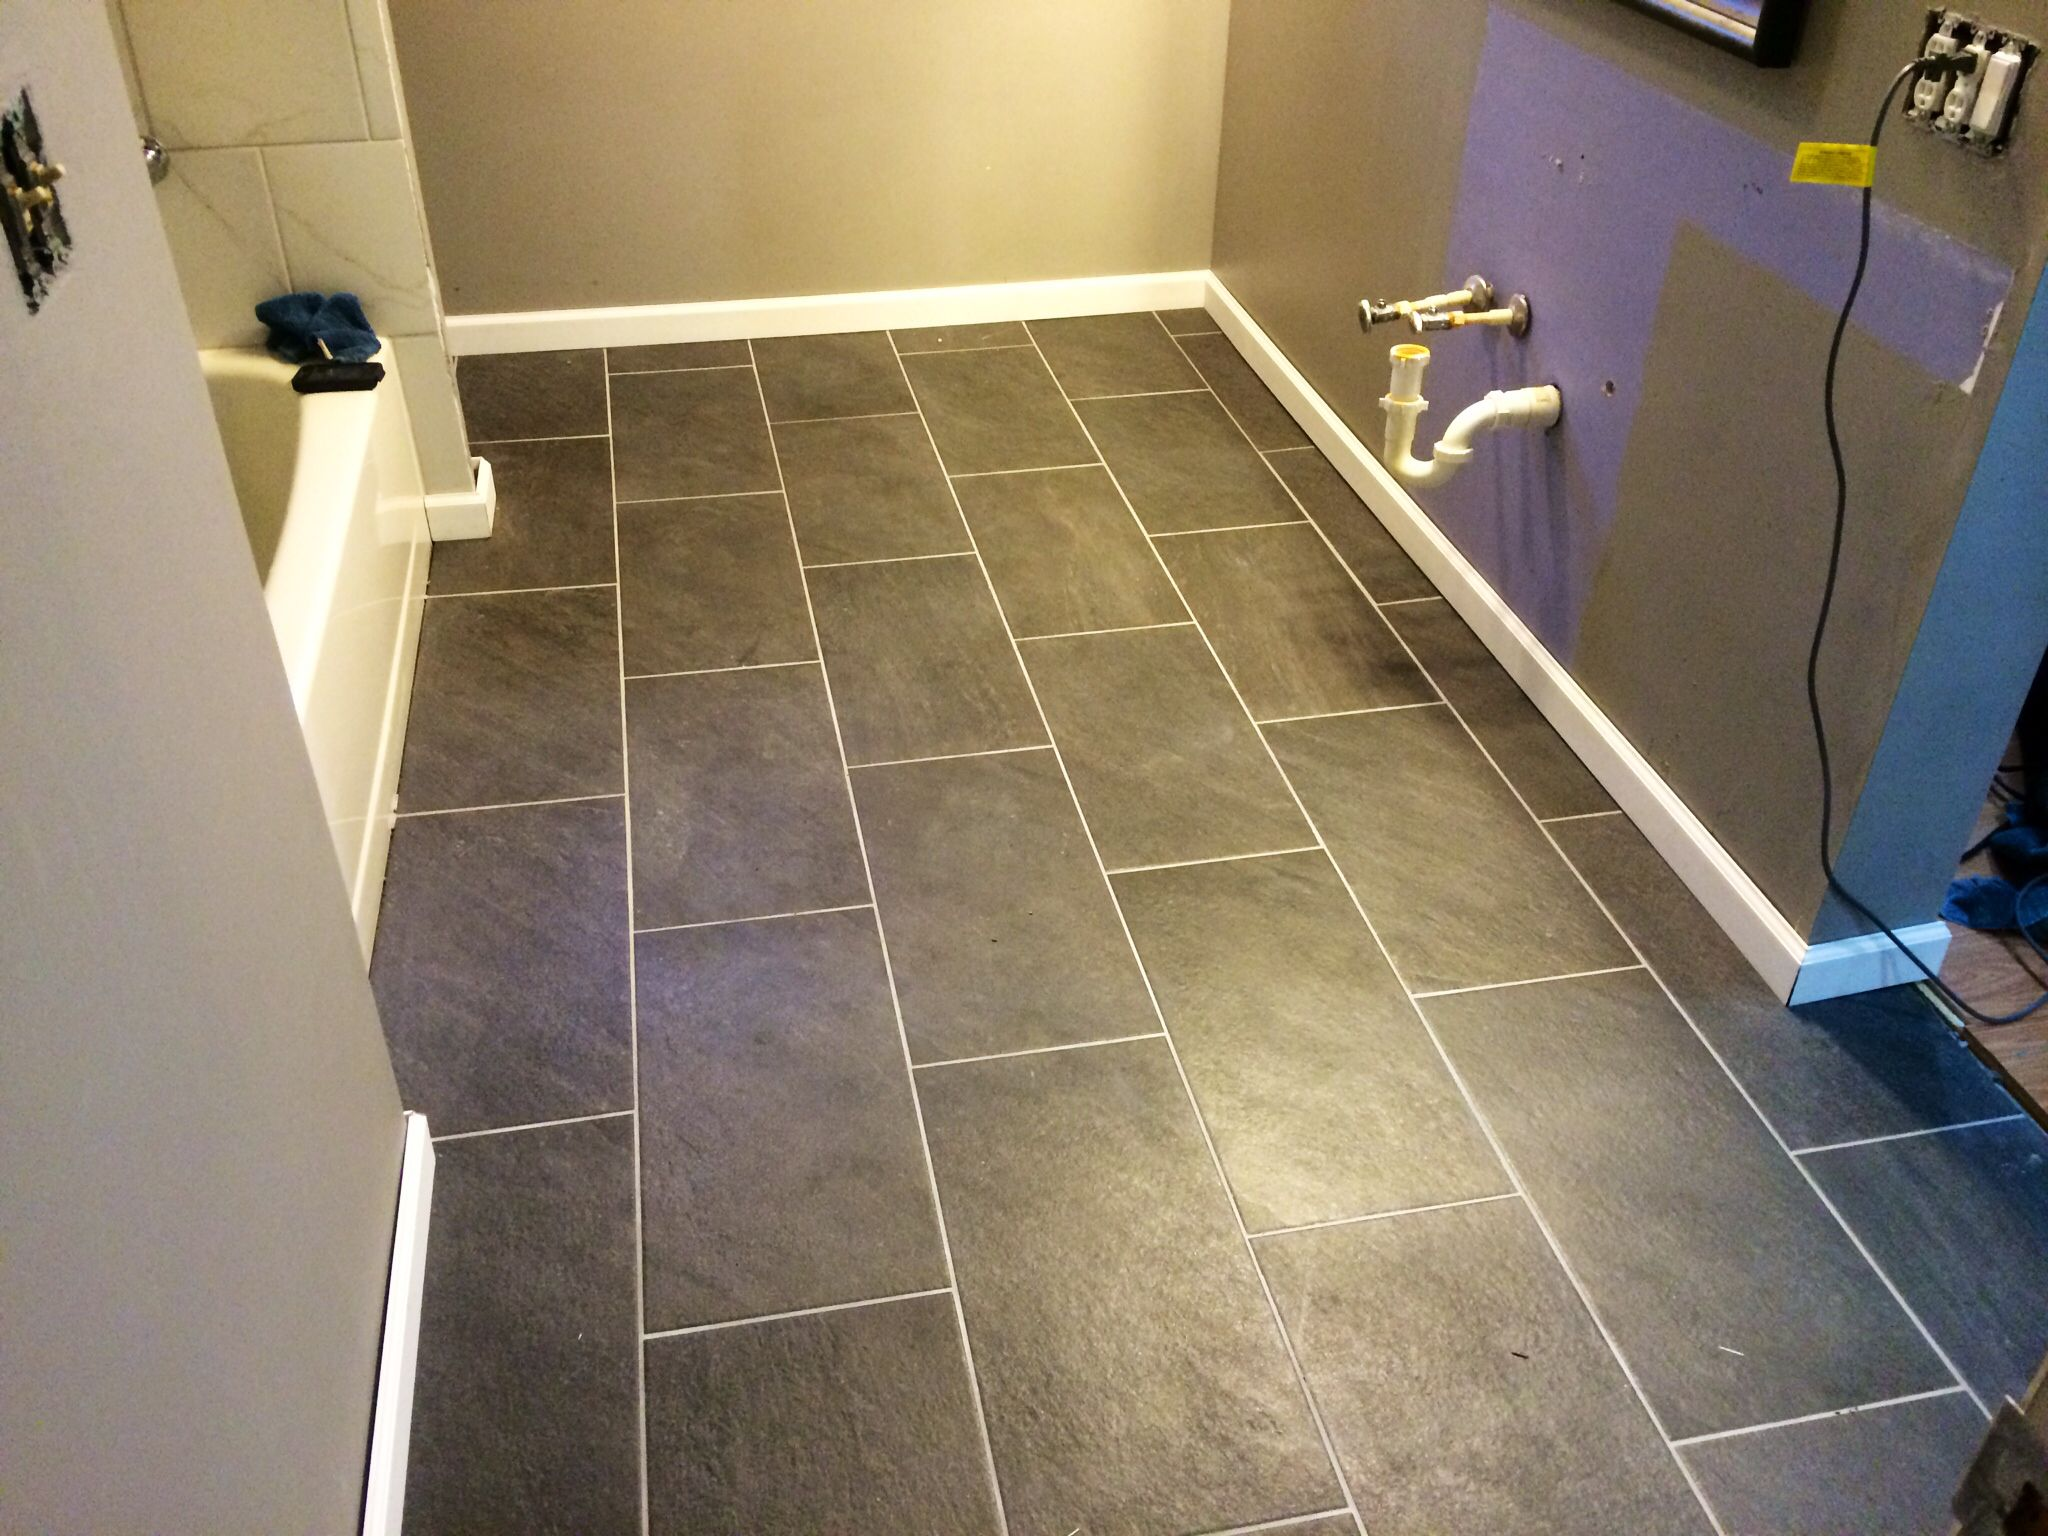 Grey Bathroom Floor Tiles Our New Charcoal Gray 12x24 Bathroom Tile Floors L O V E